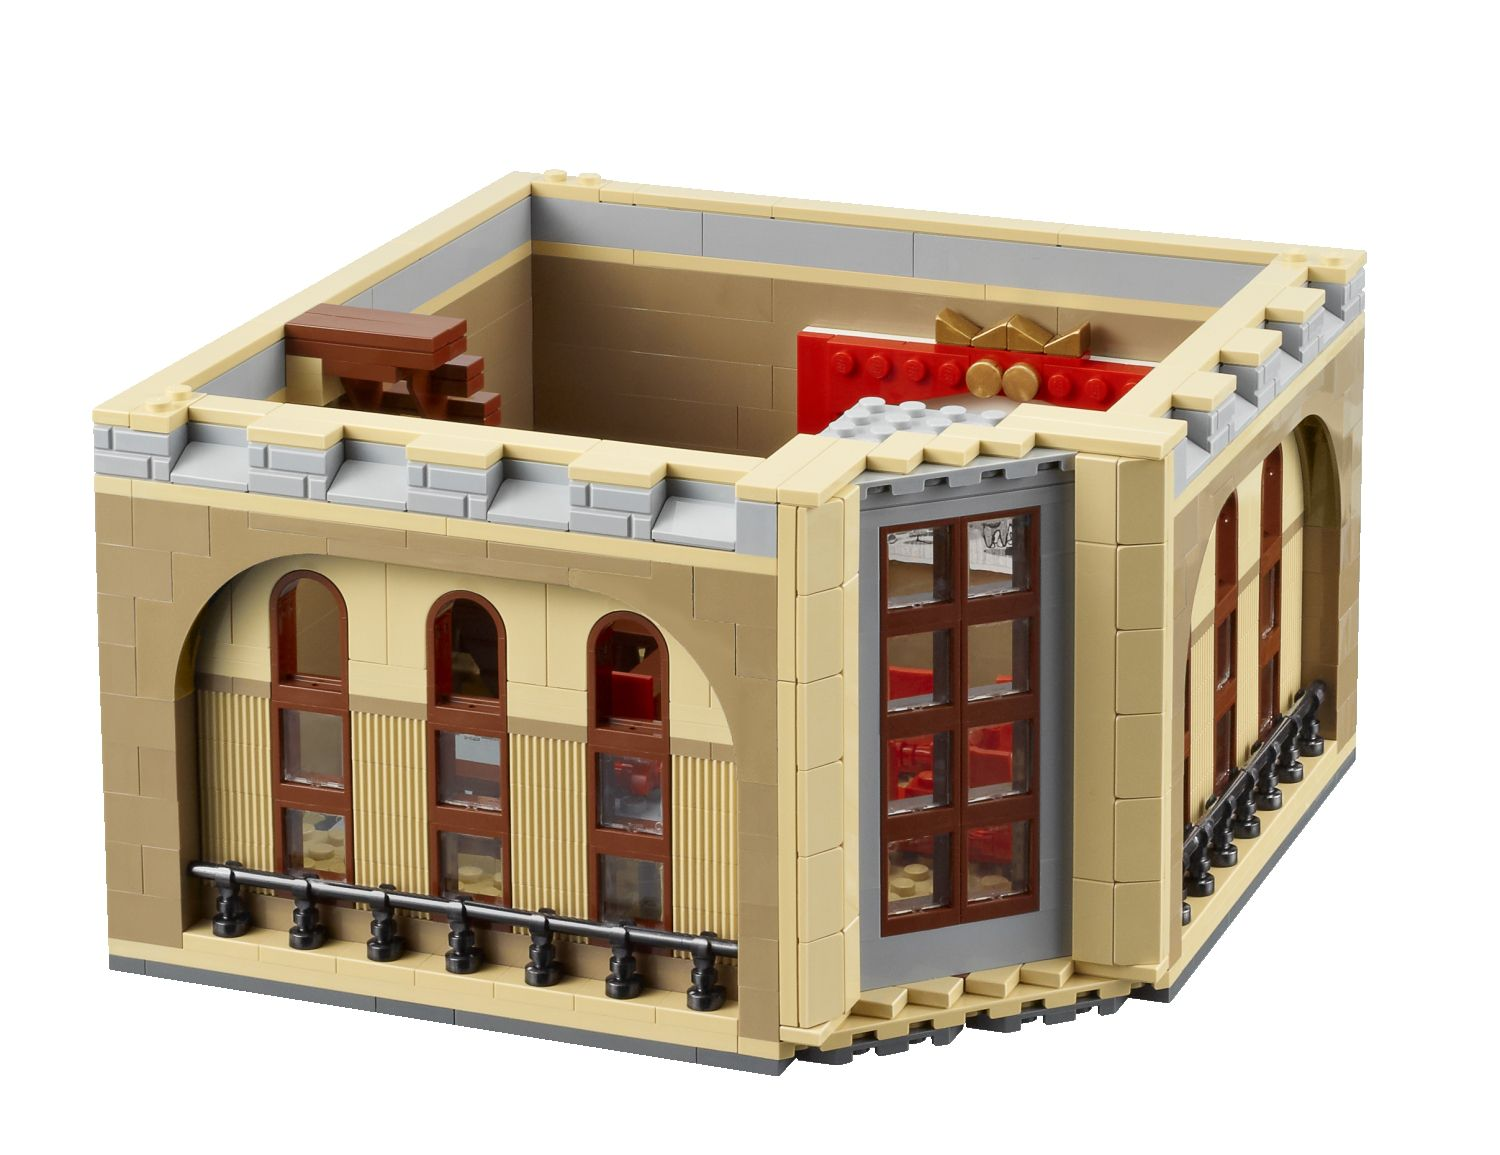 LEGO Advanced Models 10232 Palace Cinema 10232_front_callout_02_floor2.jpg